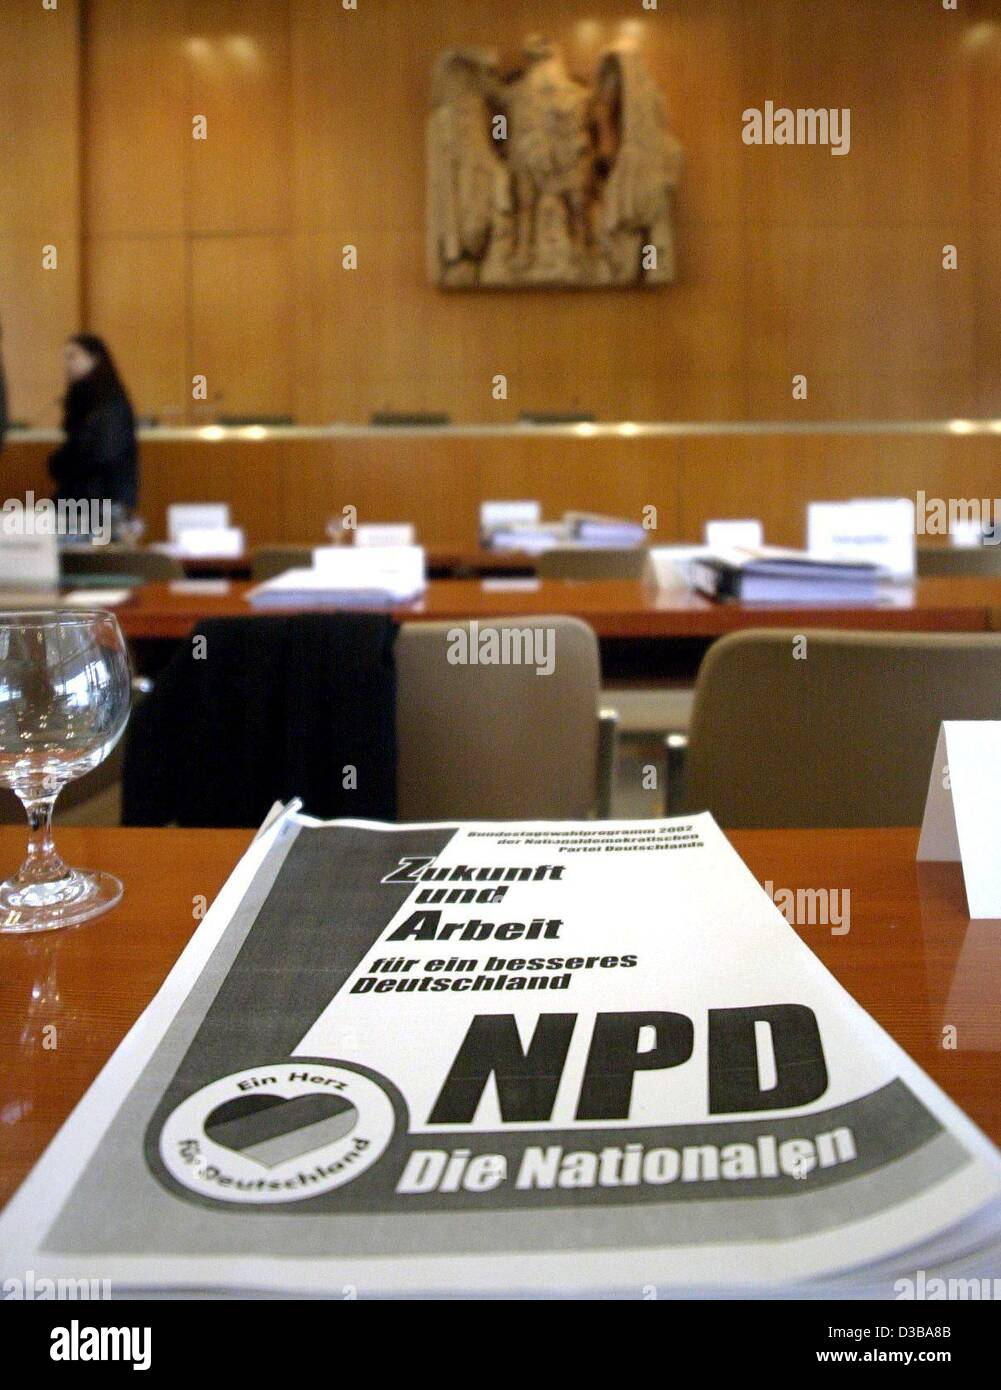 (dpa) - A handout of the far-right National Democratic Party NPD lies on the table during a break of the trial at - Stock Image